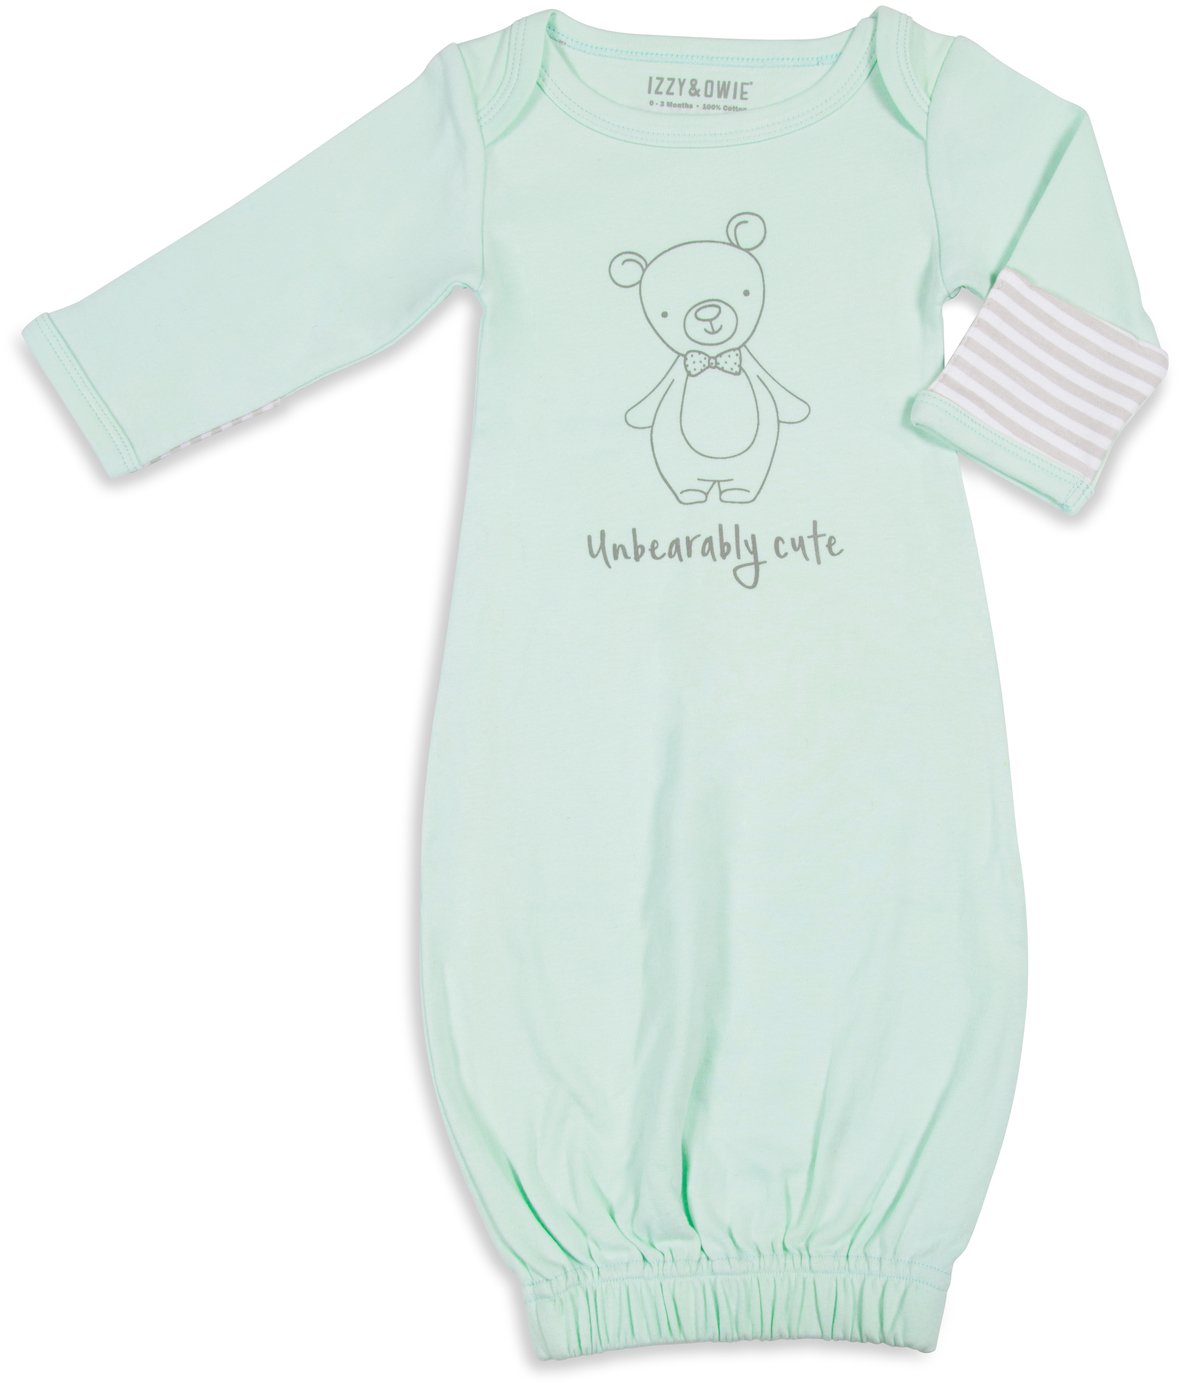 Soft Green Bear by Izzy & Owie - Soft Green Bear - 0-3 Months Gown with Mitten Cuffs